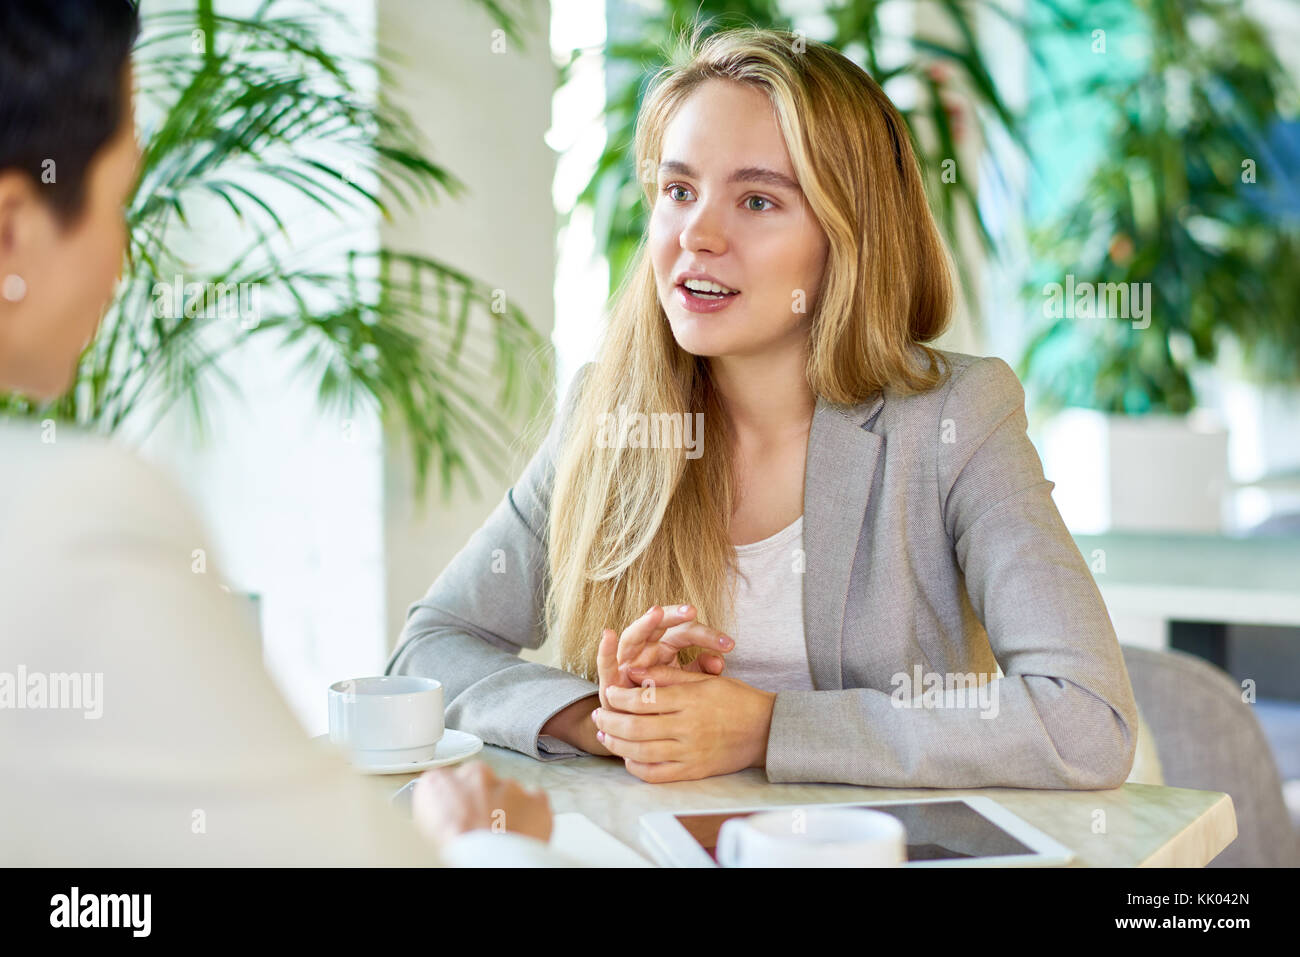 Portrait of two modern young women discussing work sitting at table in cafe during business meeting, focus on young - Stock Image